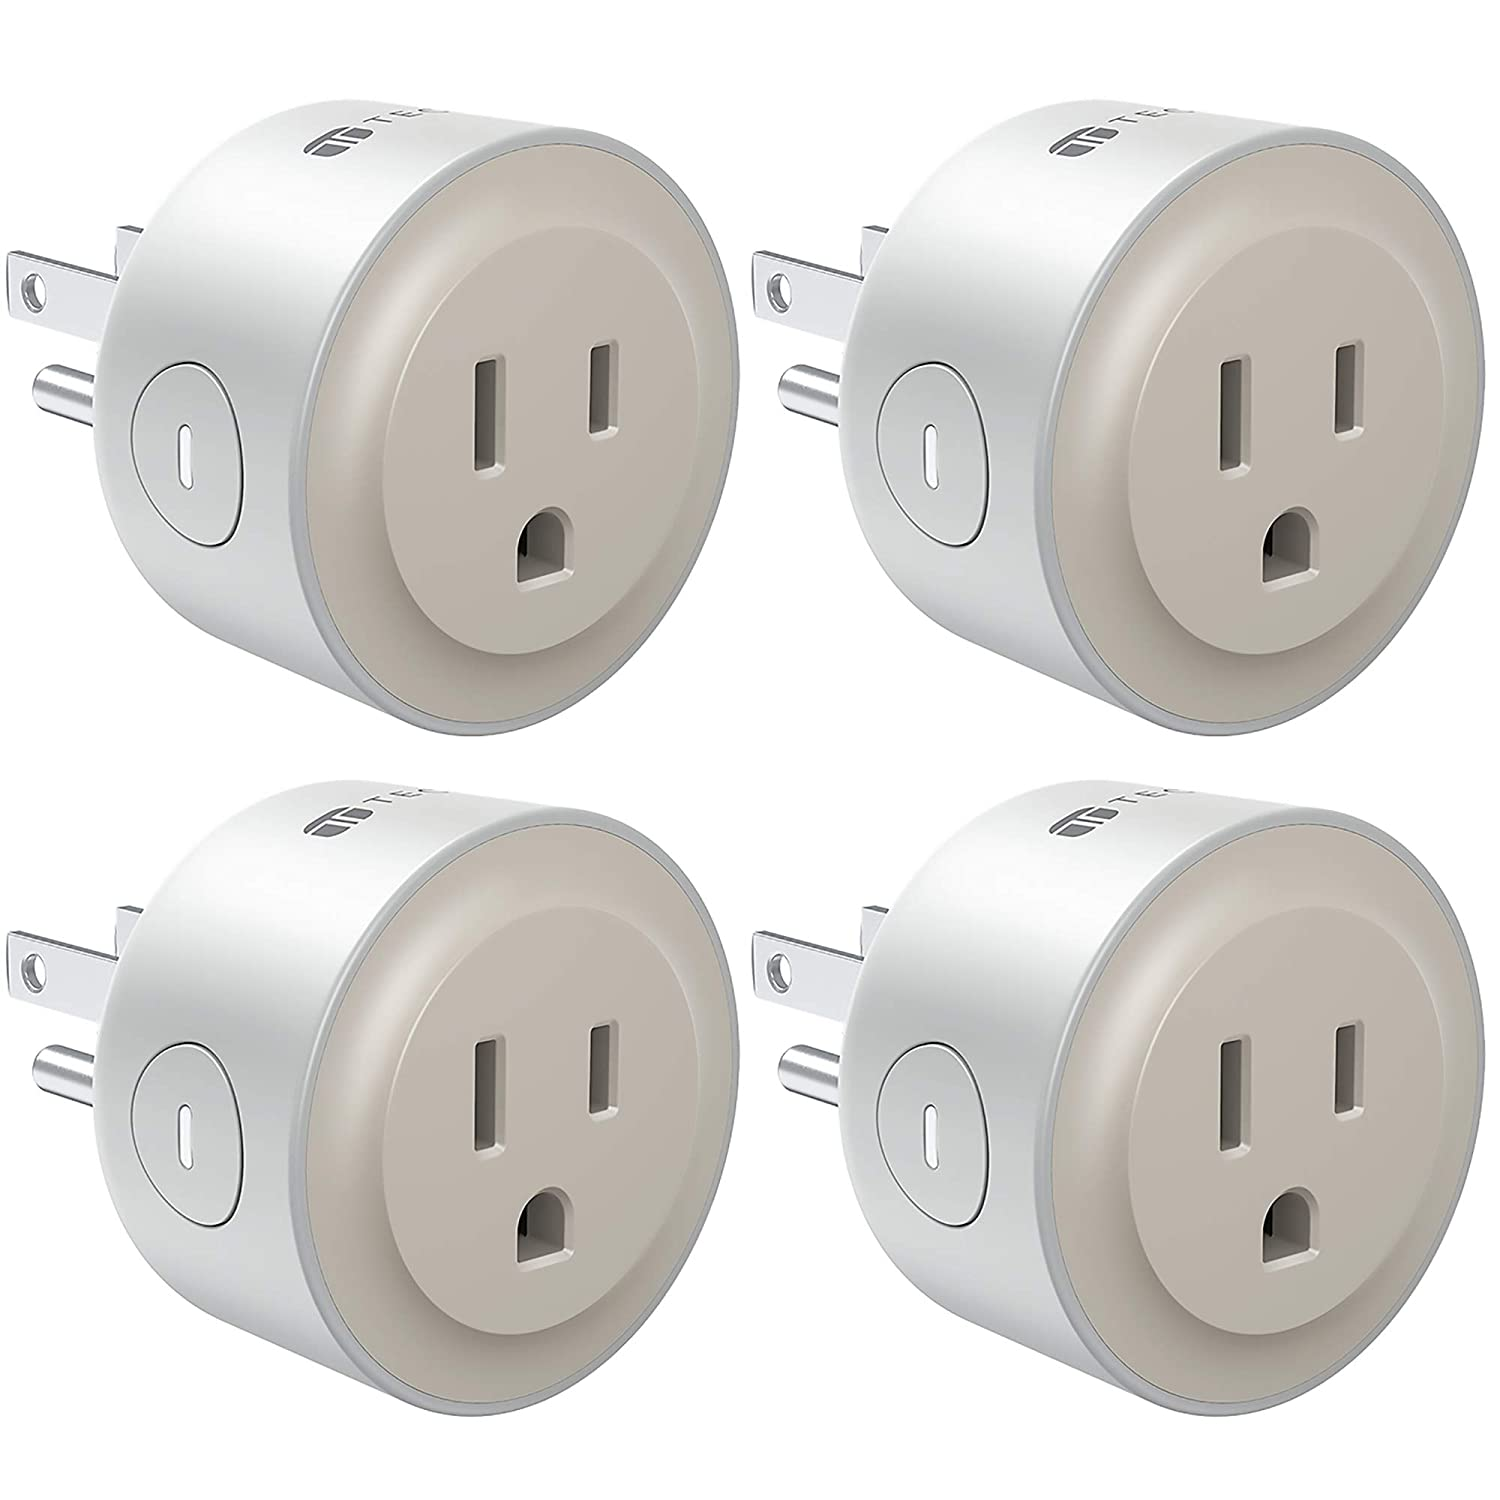 TECKIN Smart Plug, Smart Home Mini WiFi Outlet Works with Alexa, Echo&Google Home, Smart Outlet with Remote Control, Timer Function, No Hub Required, FCC/ETL Certified, Beige Outlet 4 Pack